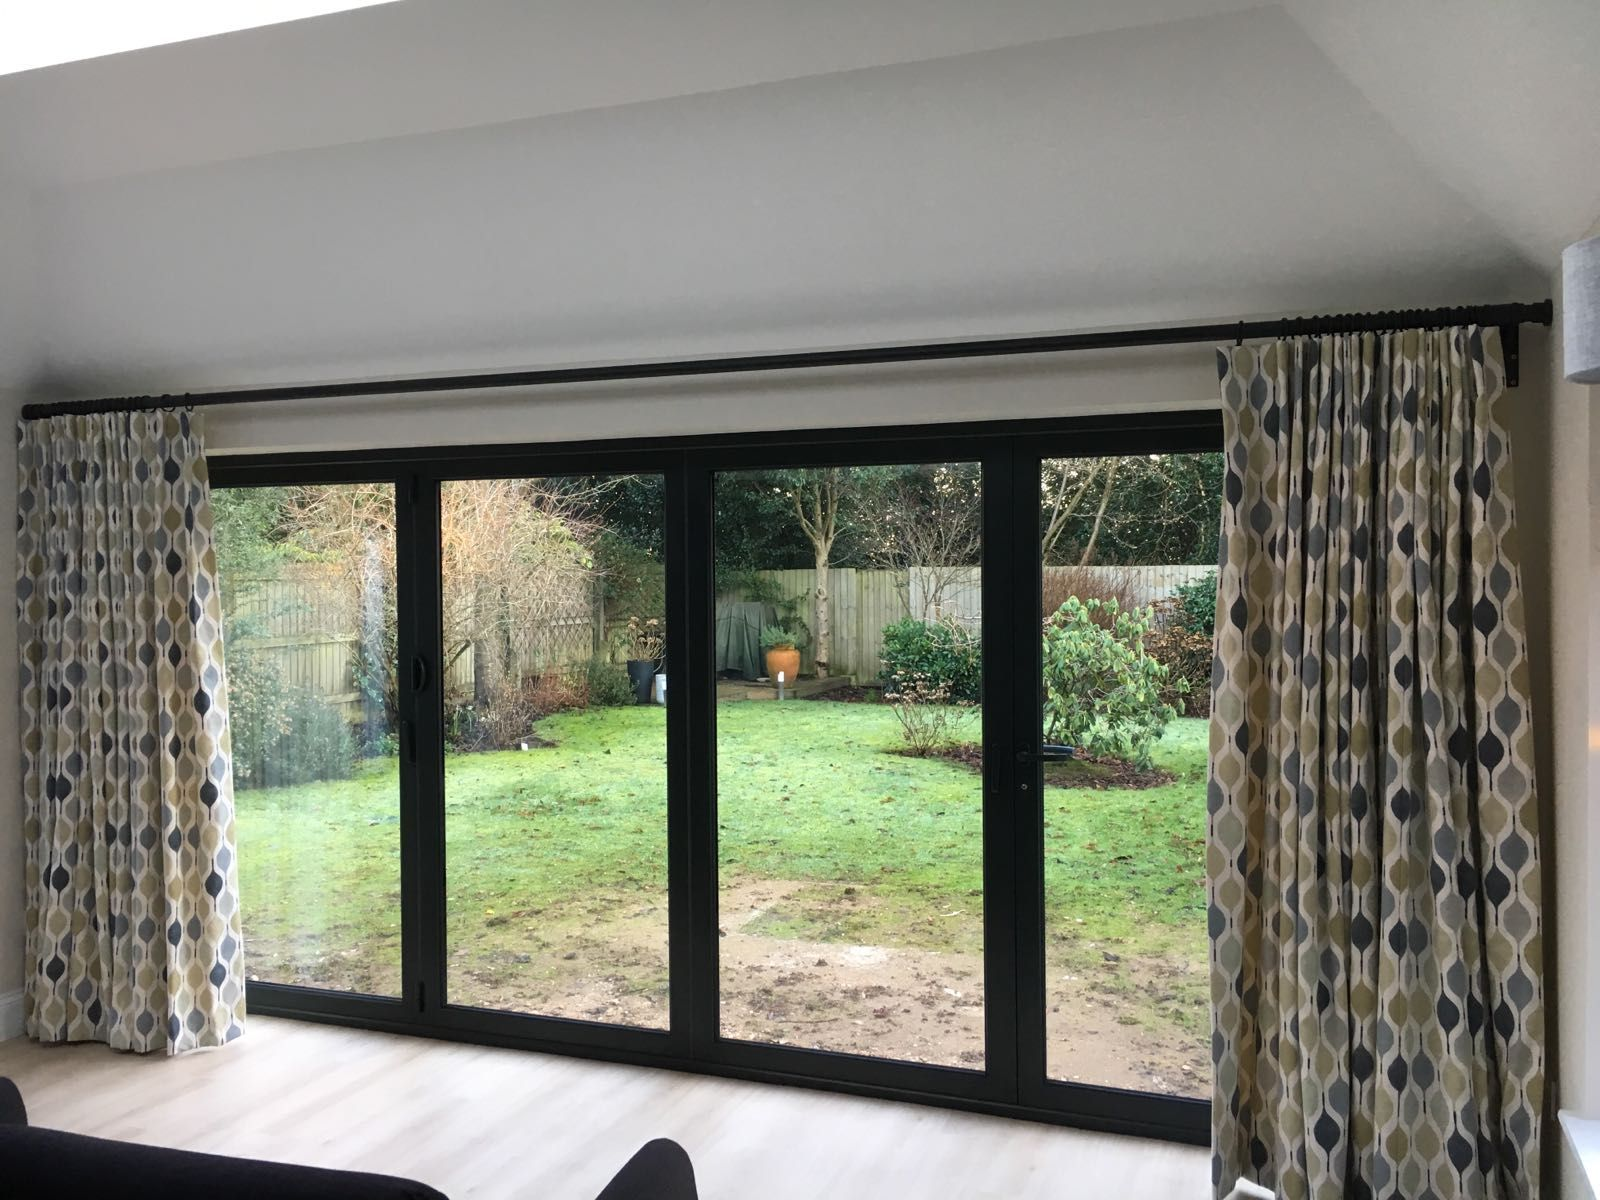 Rideaux Baie Vitrée Coulissante hallwright bi-fold door pole only two brackets over 4.6